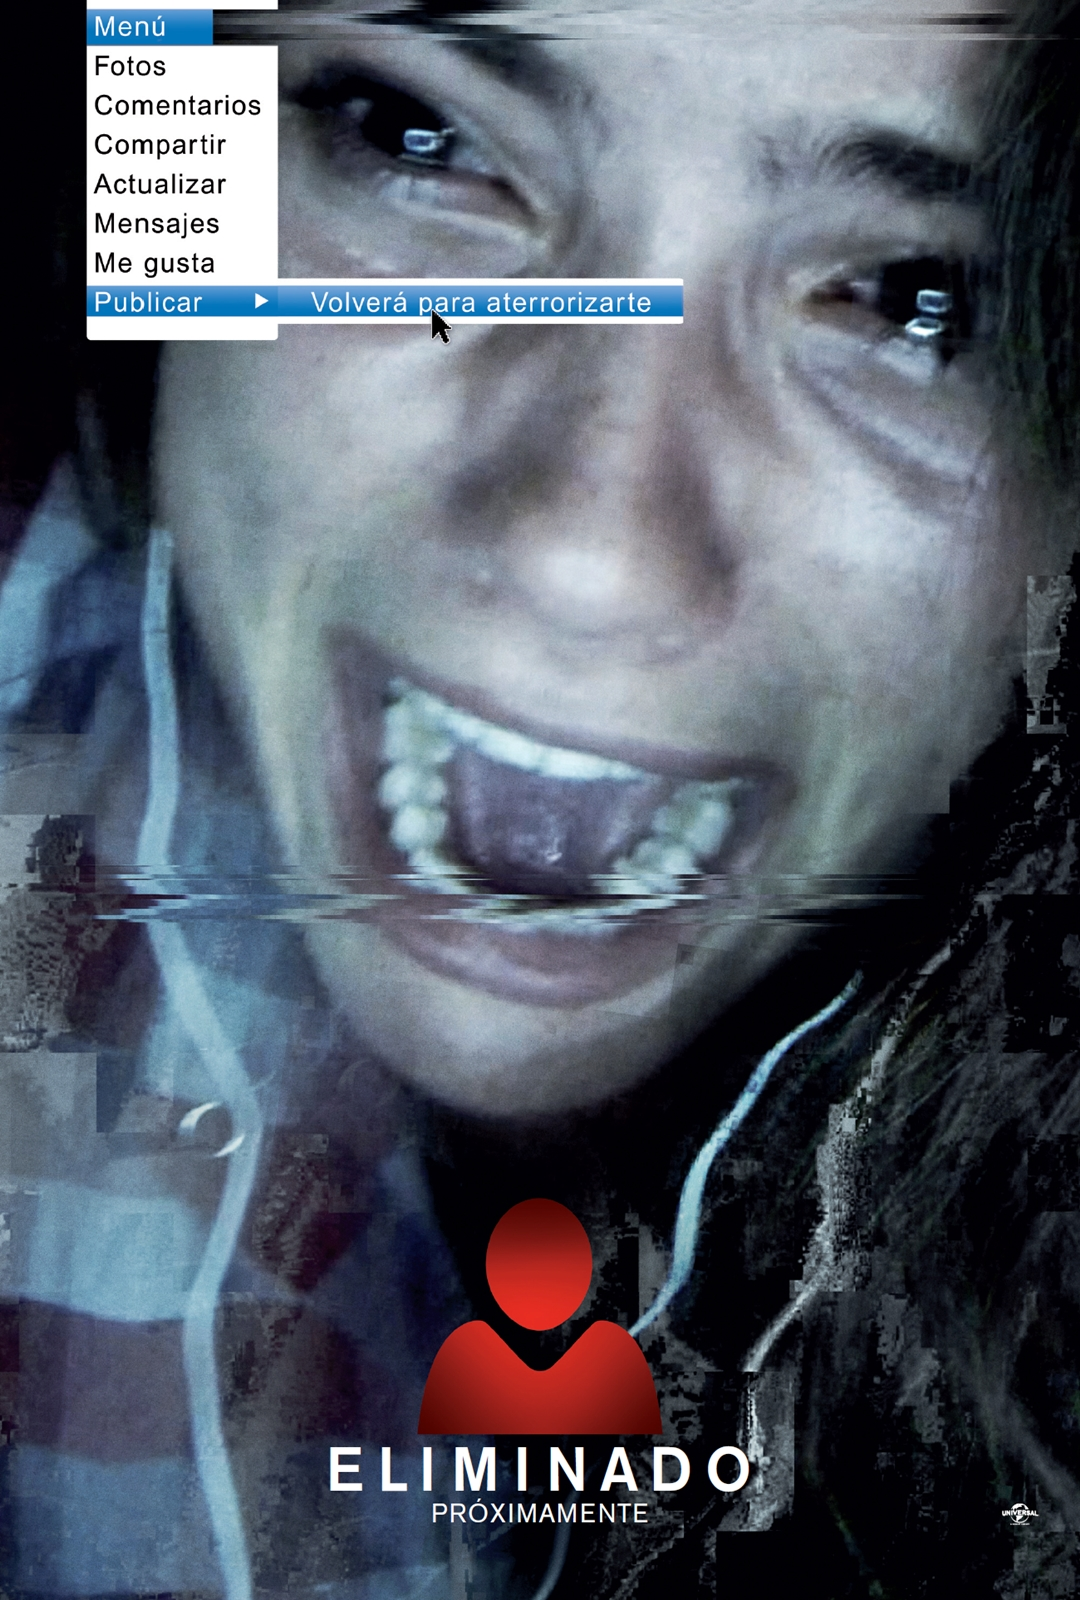 Unfriended (Eliminado) (2015)